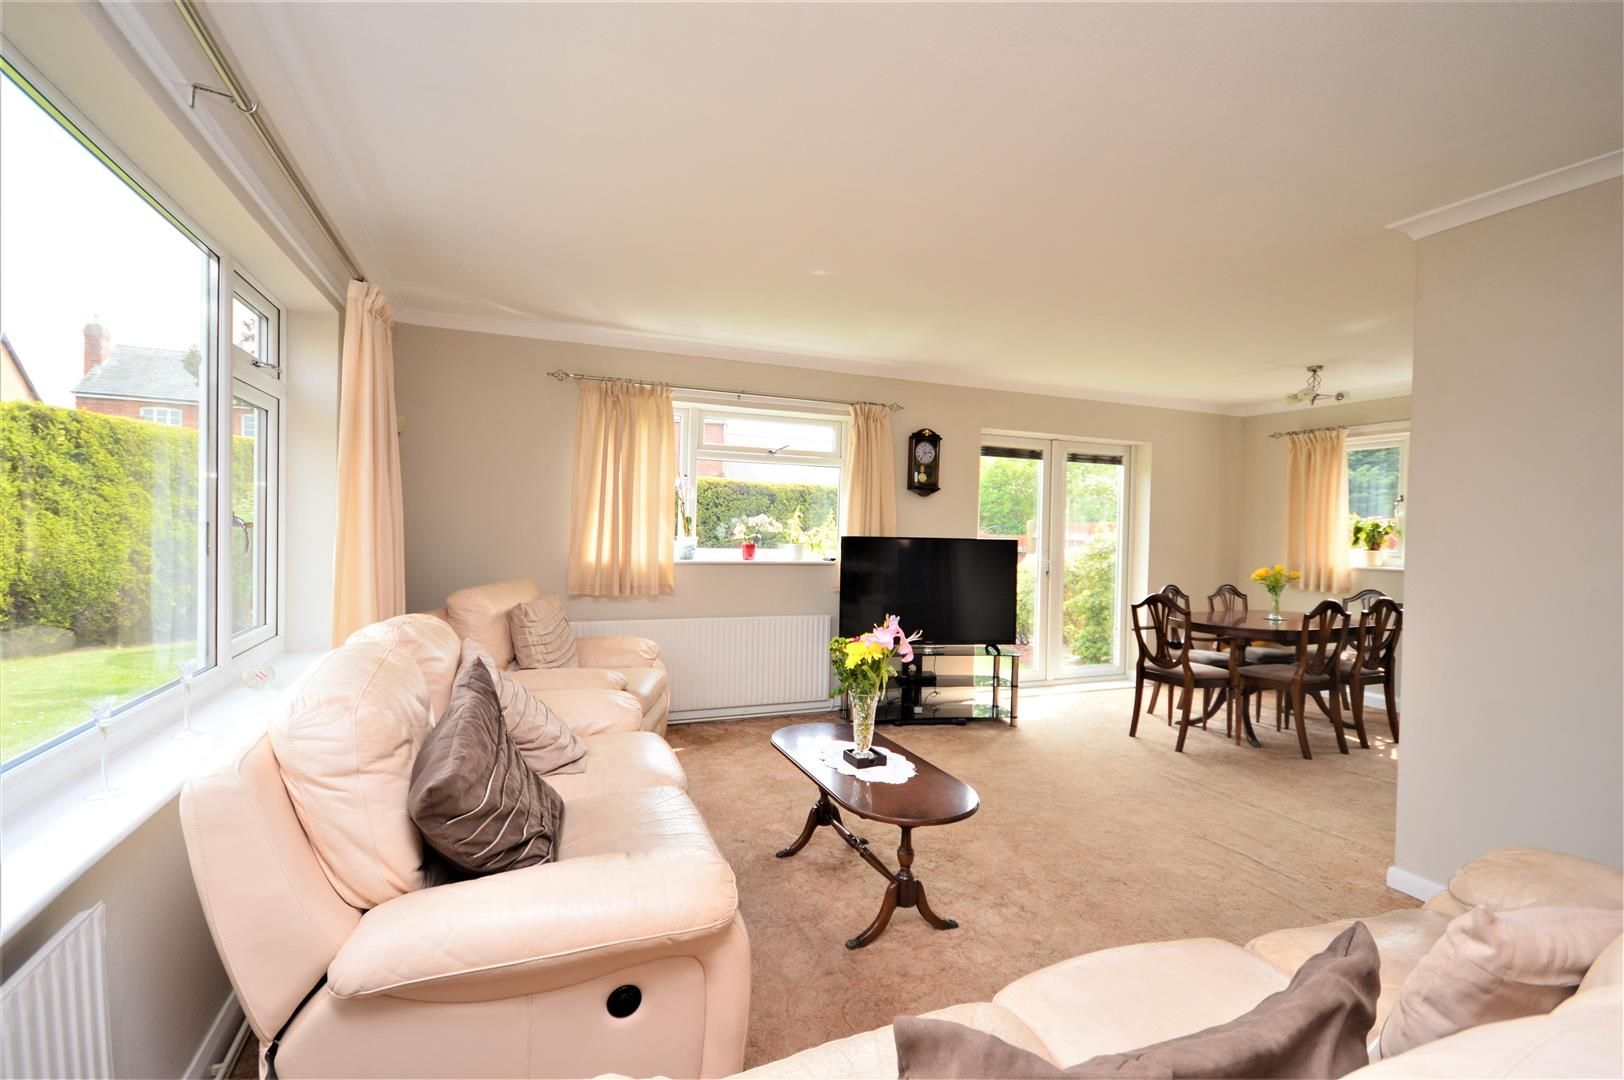 4 bed detached-bungalow for sale in Marden  - Property Image 2